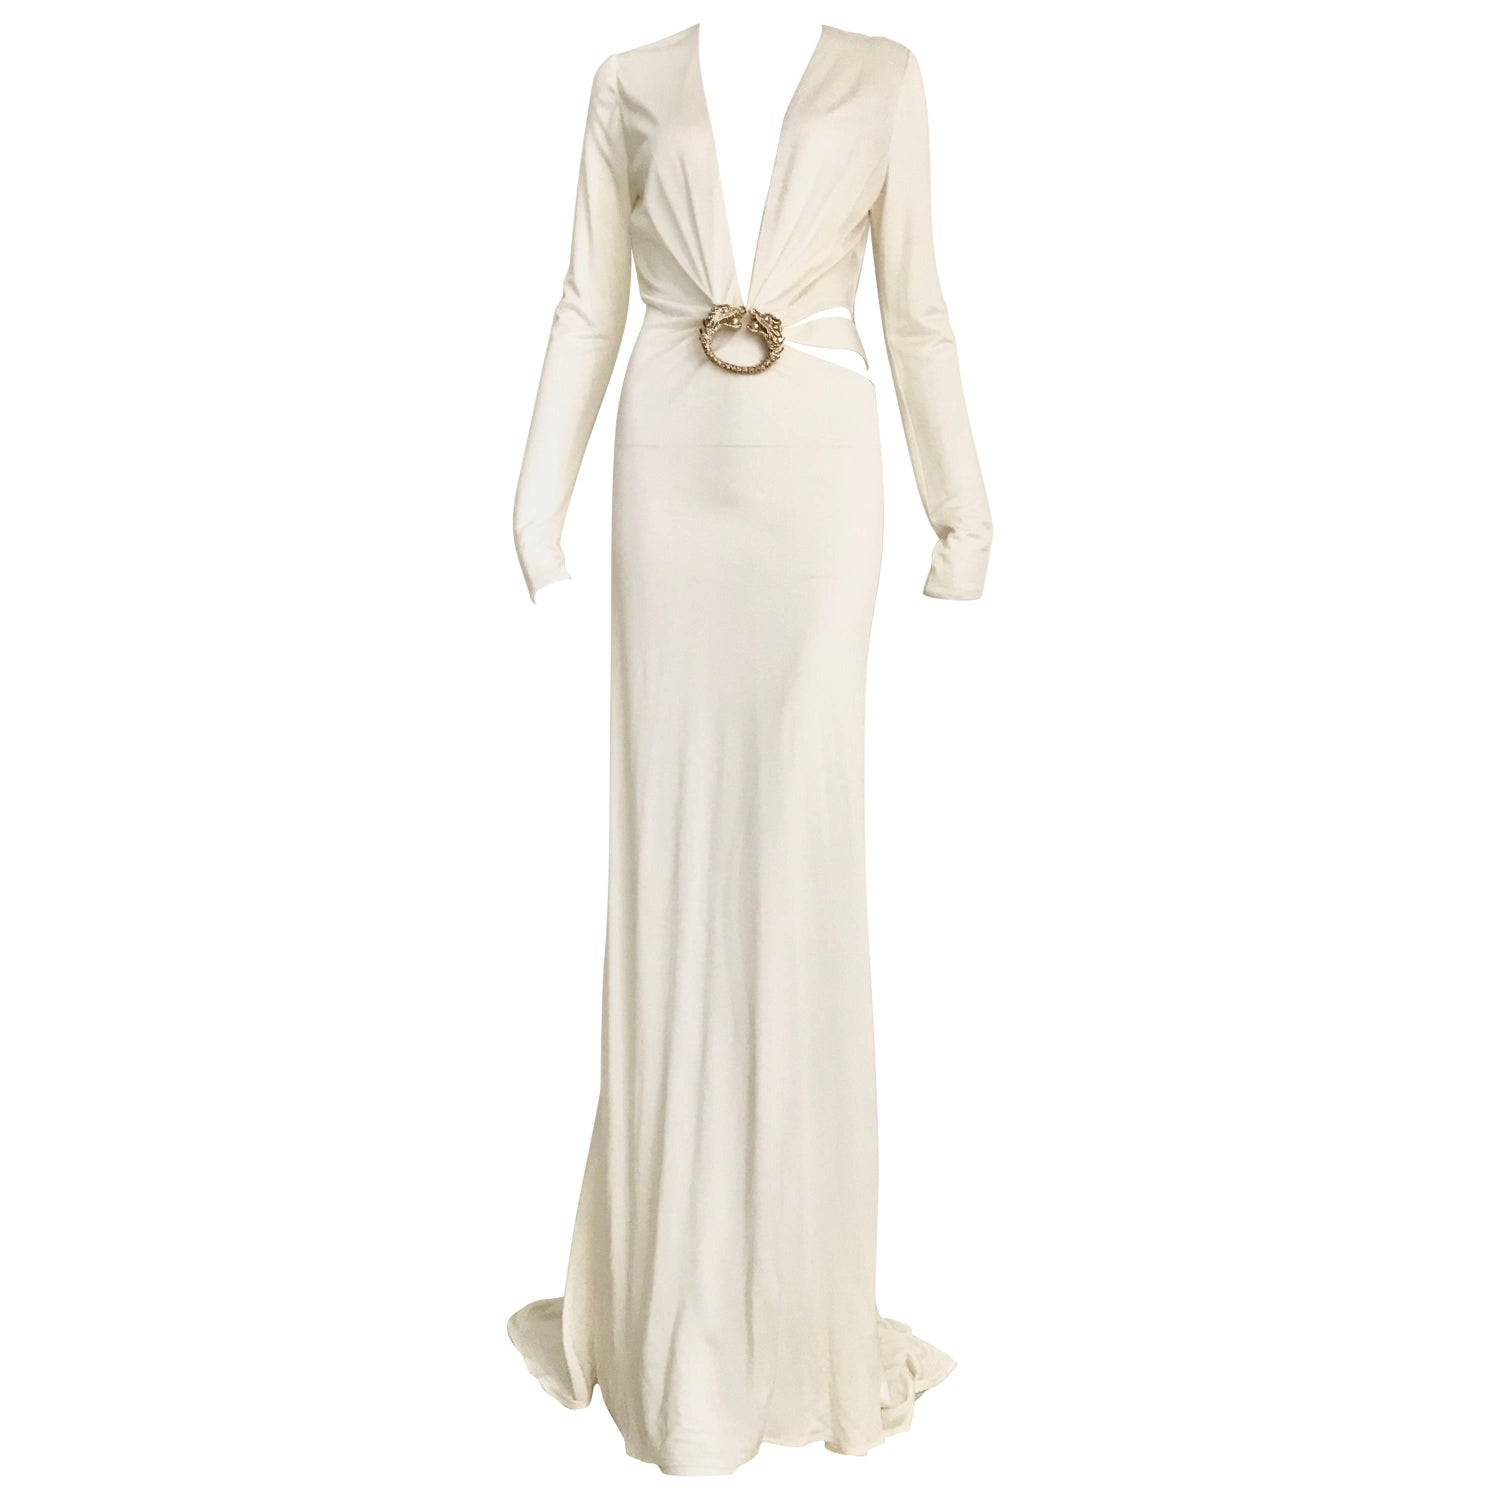 vintage tom ford evening dresses and gowns 138 for sale at 1stdibs